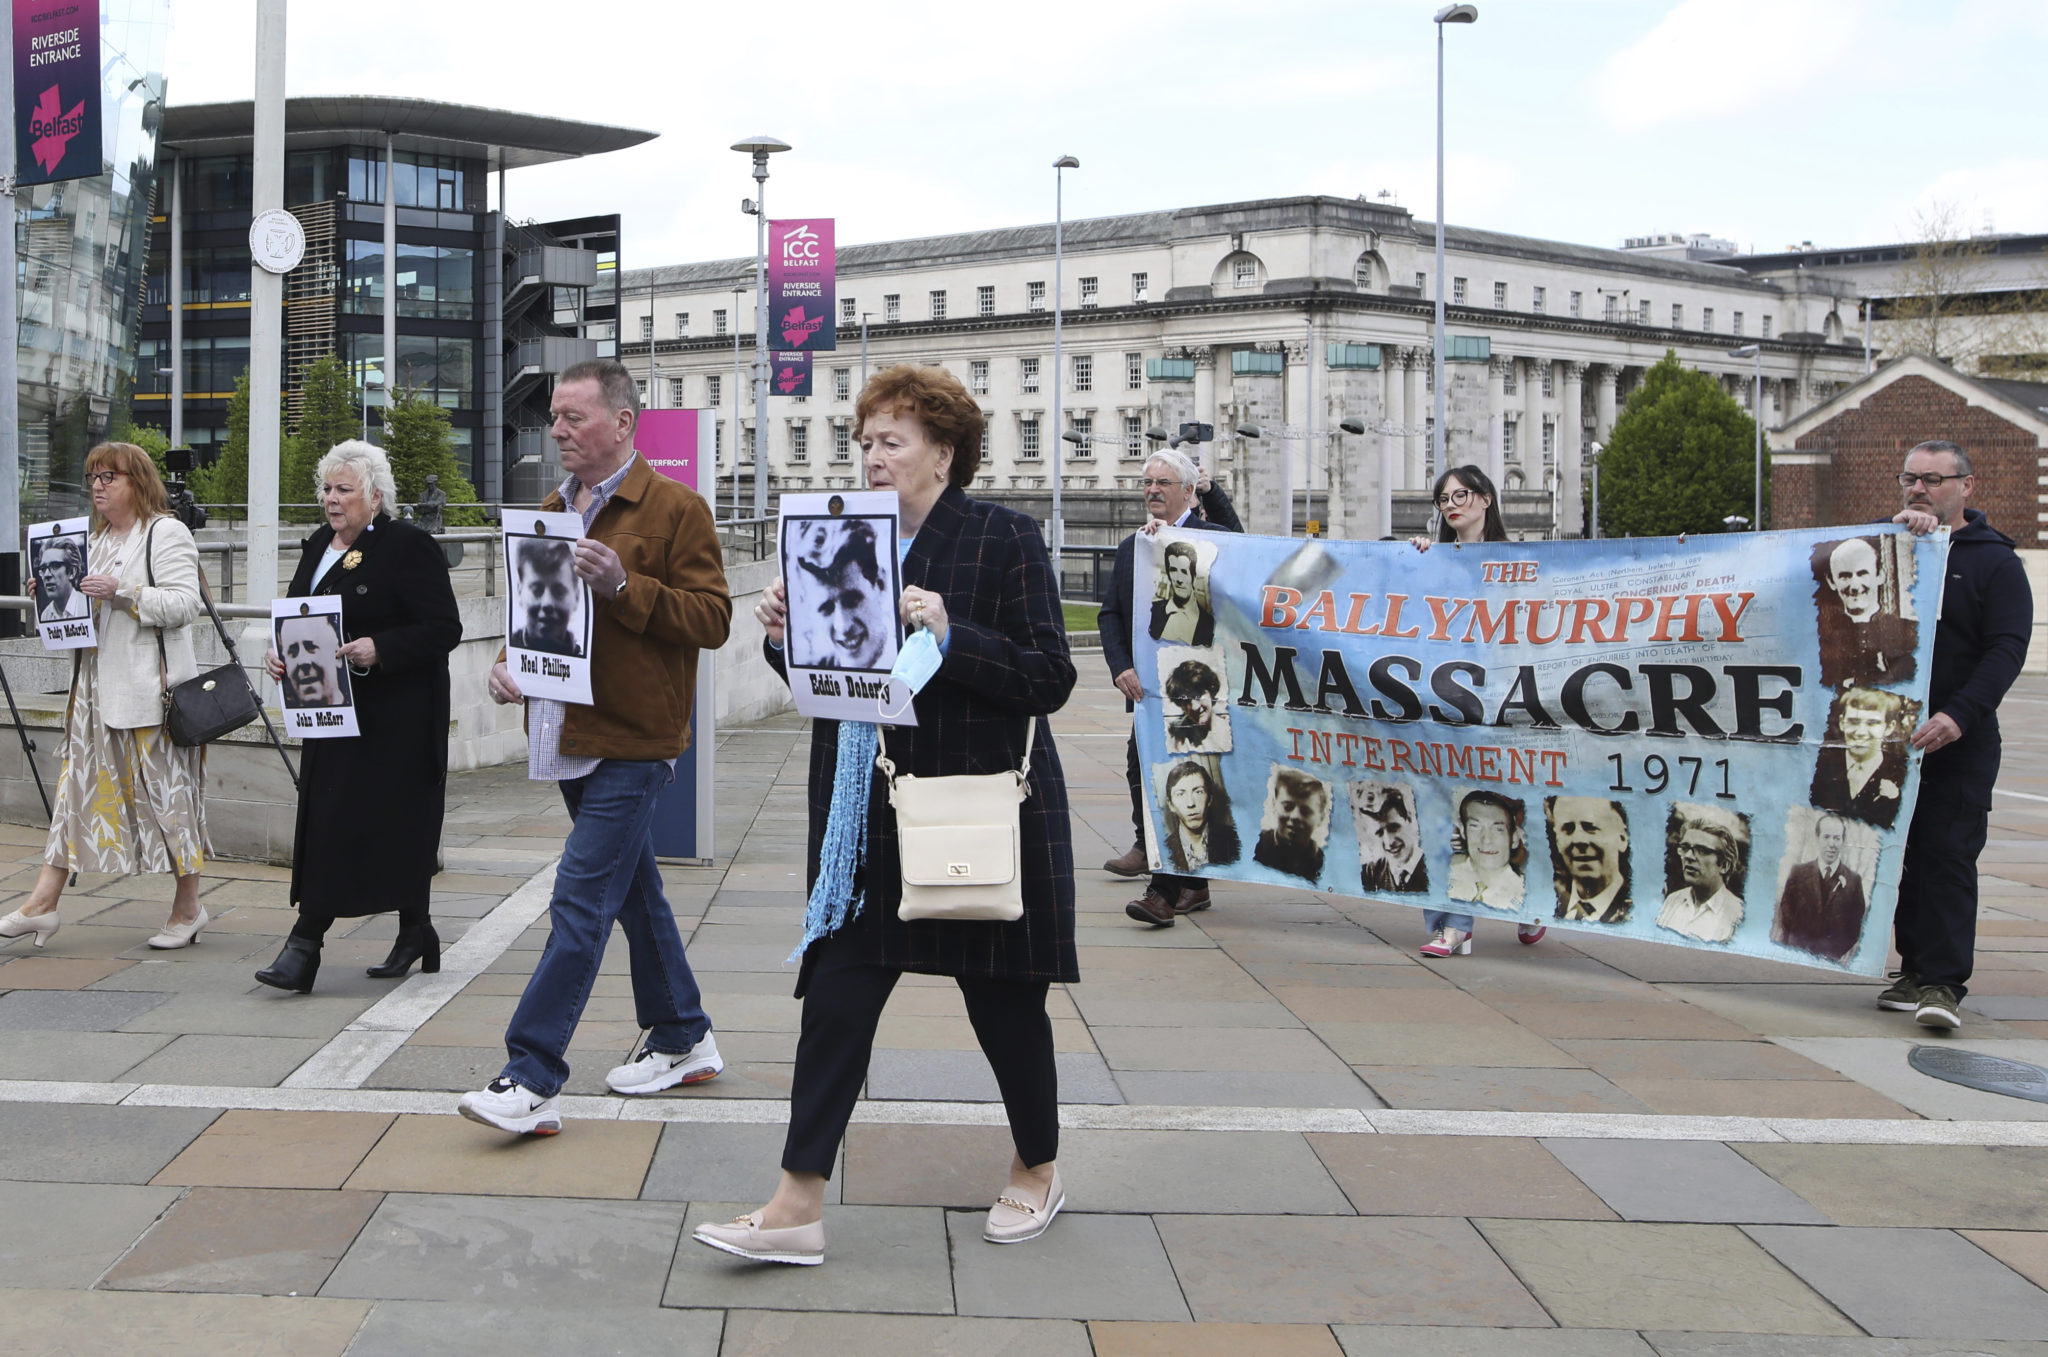 Relatives arrive for the inquest into the Ballymurphy Massacre